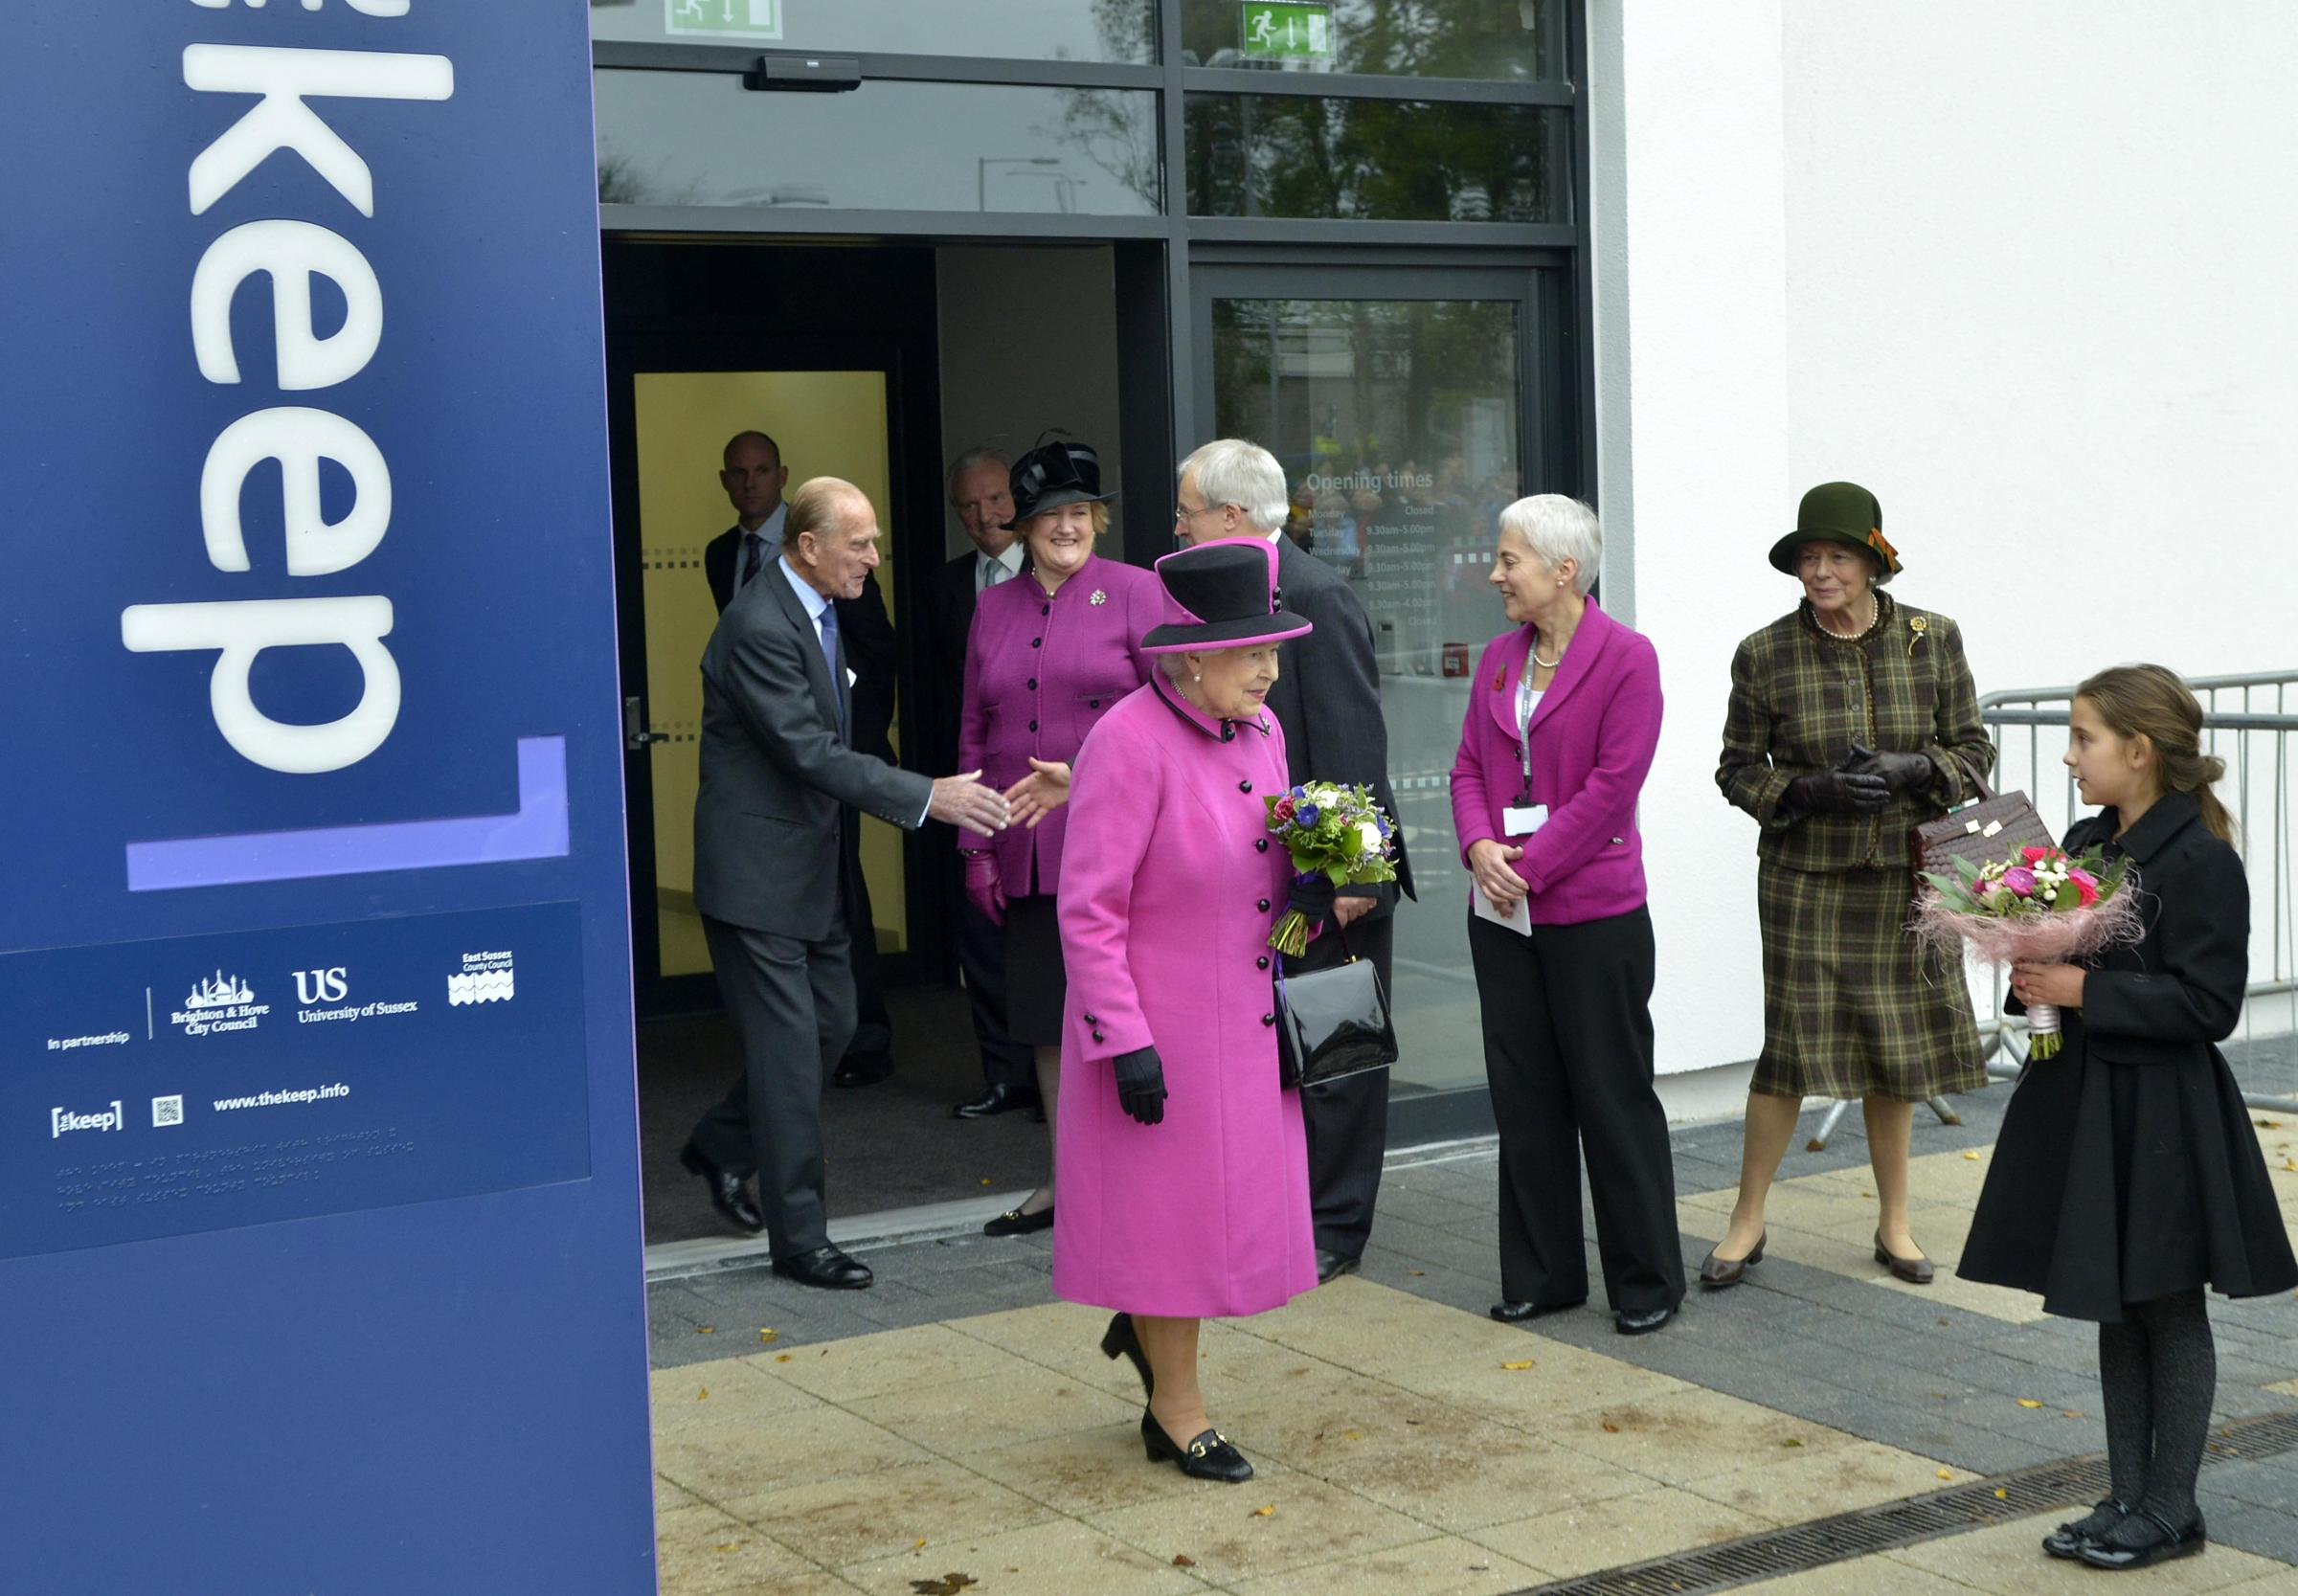 Treasured moments to Keep as the Queen opens archive in Brighton